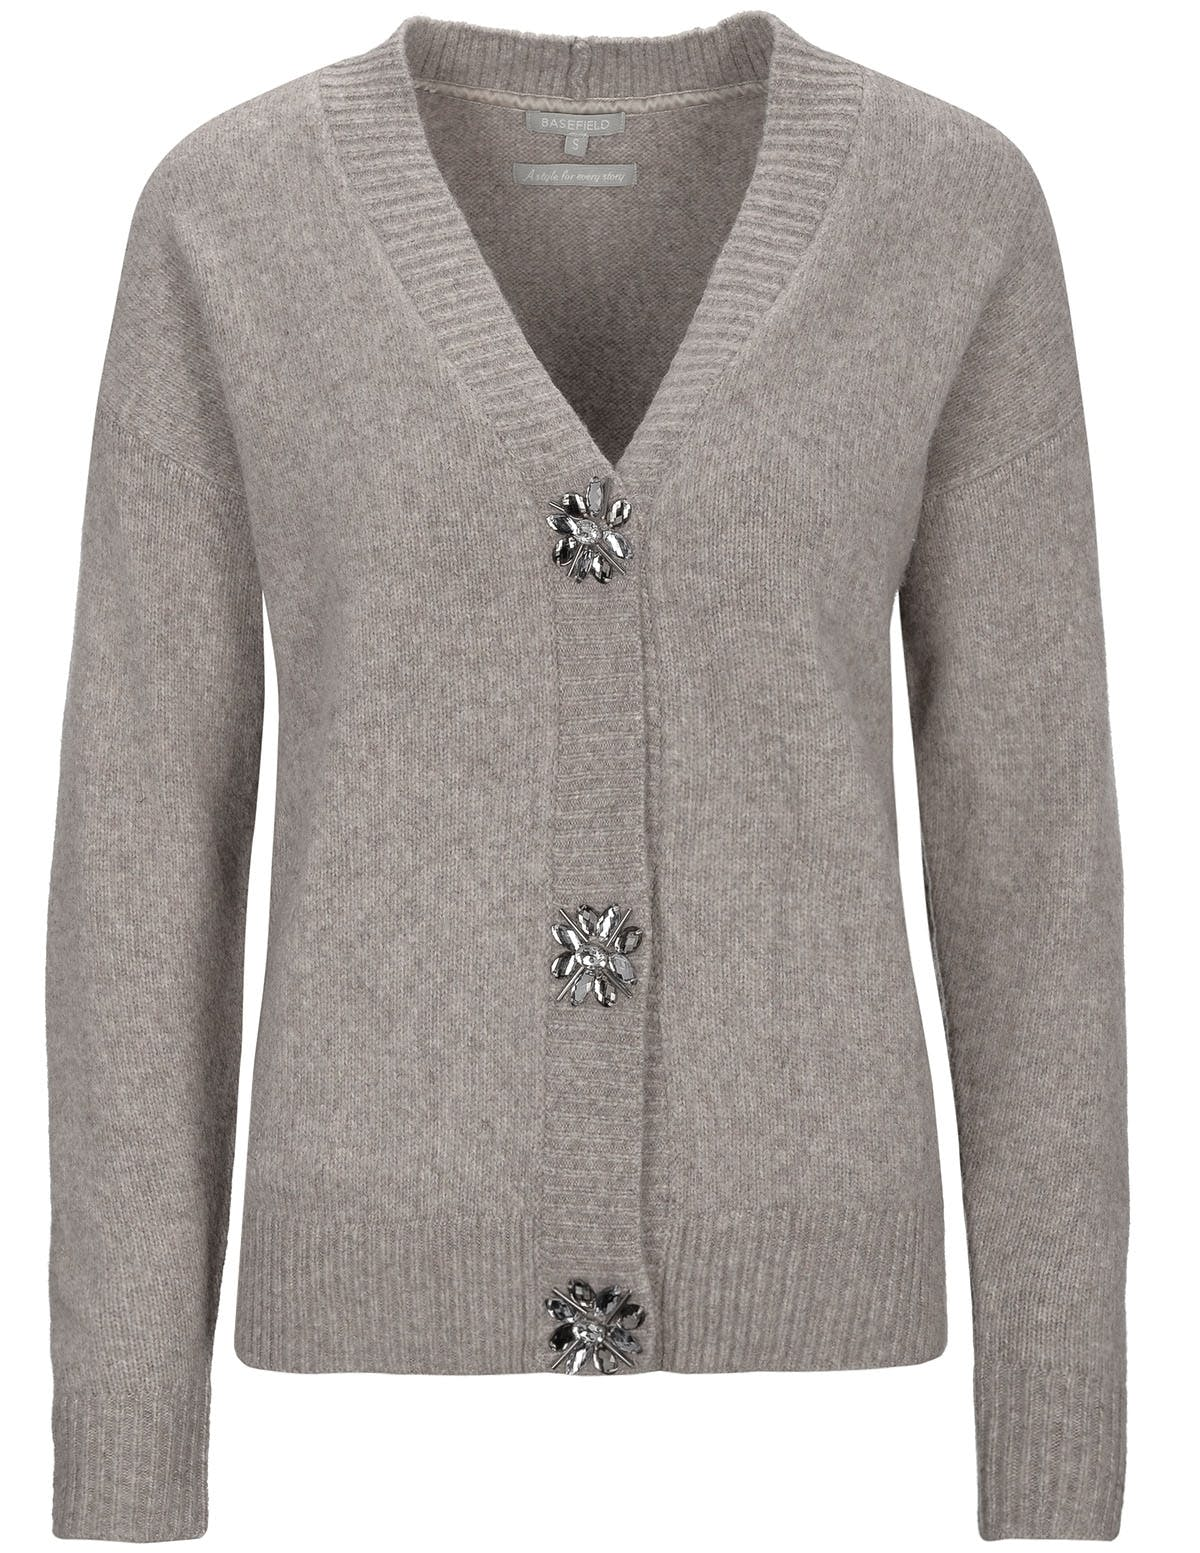 Cardigan mit Schmuckstein-Applikation - Shadow Grey Melange